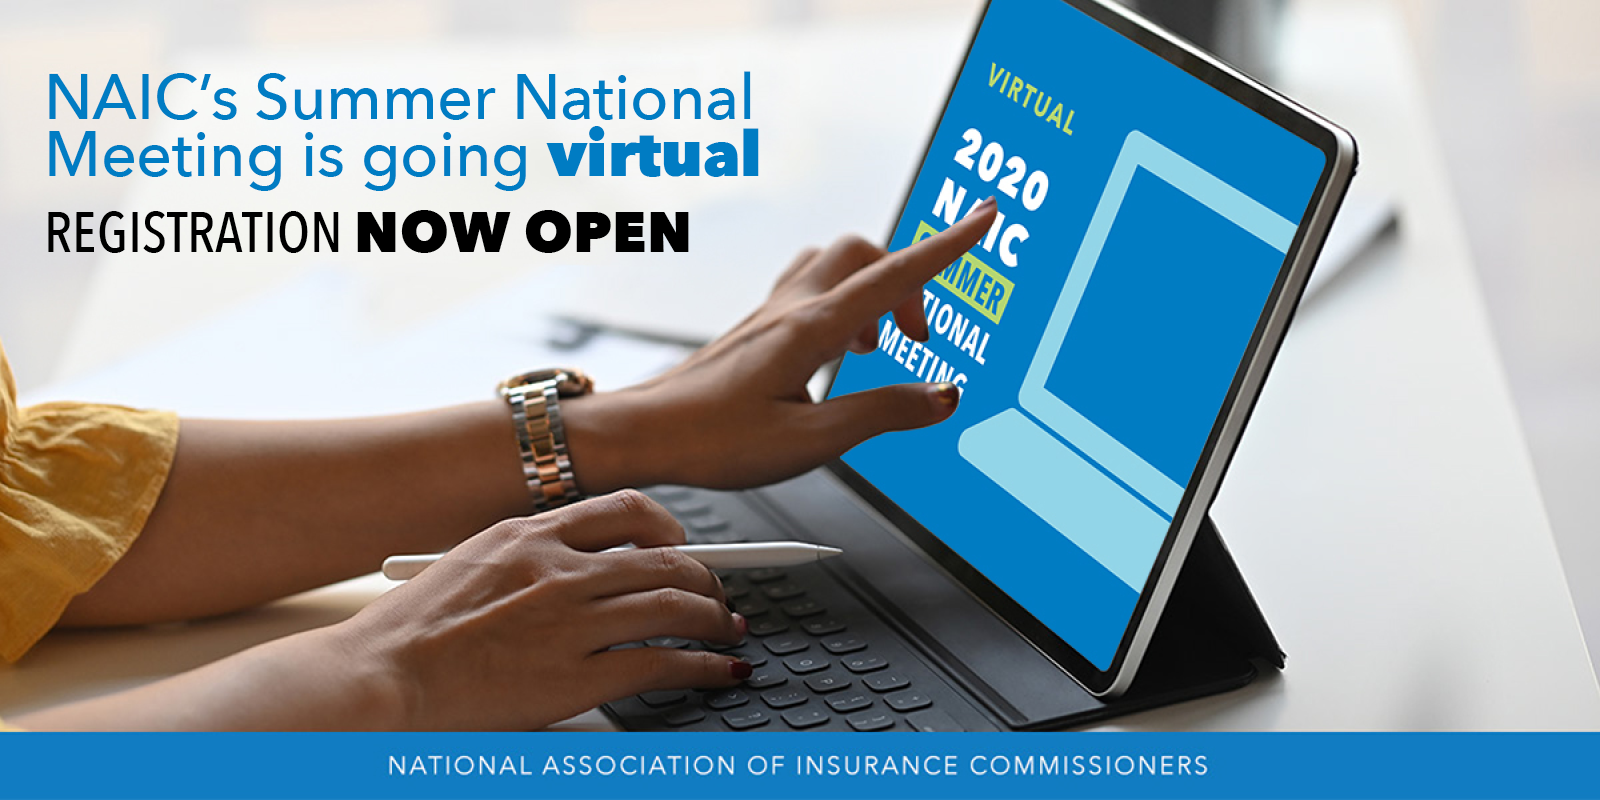 NAIC Virtual Summer National Meeting